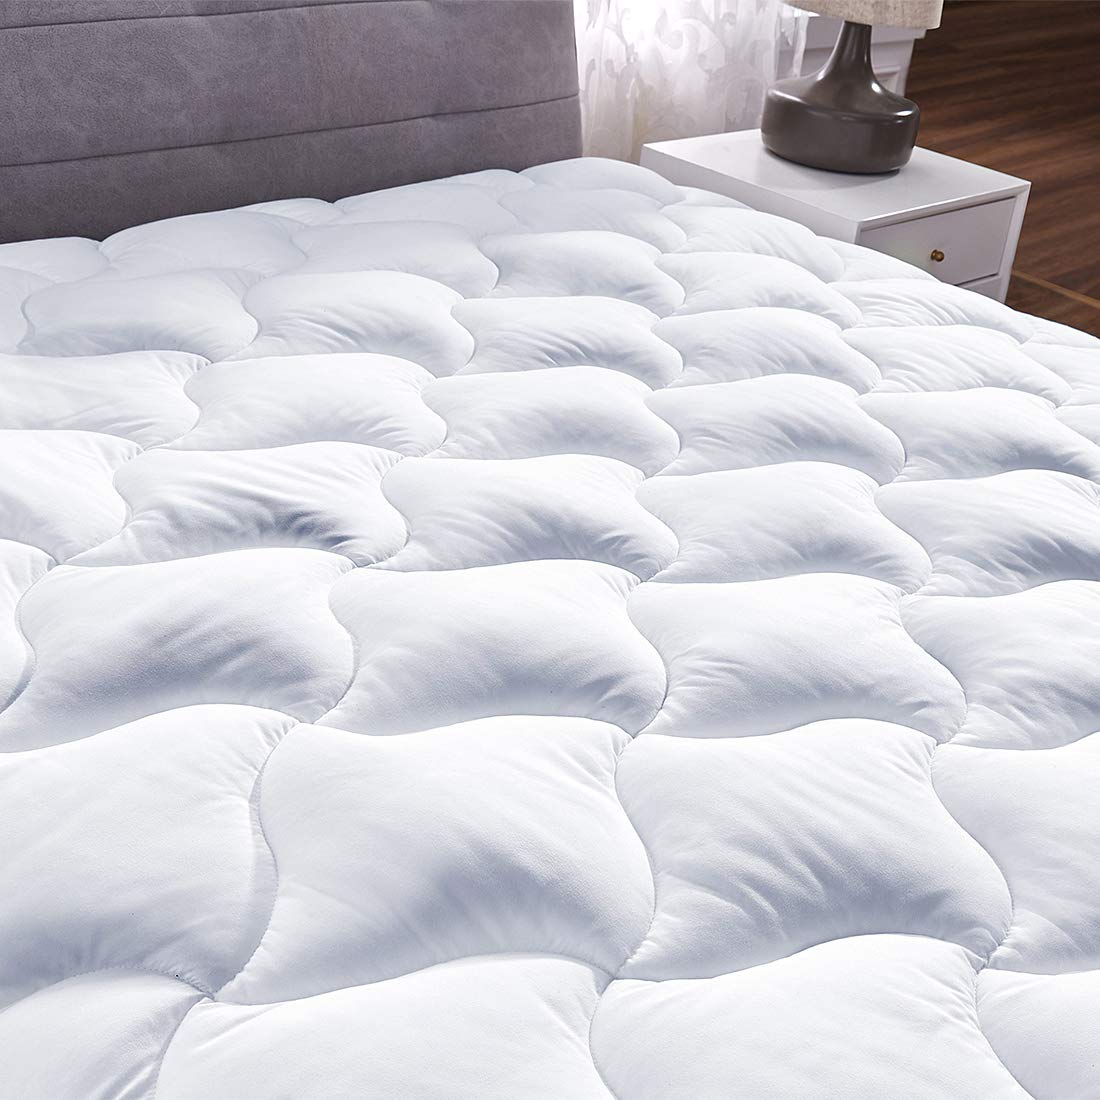 Quilted Fitted Mattress Pad Cover Pillowtop Overfilled Cooling 8-21 Inch Deep Pocket Bed Topper with Sonw Down Alternative (White, King)